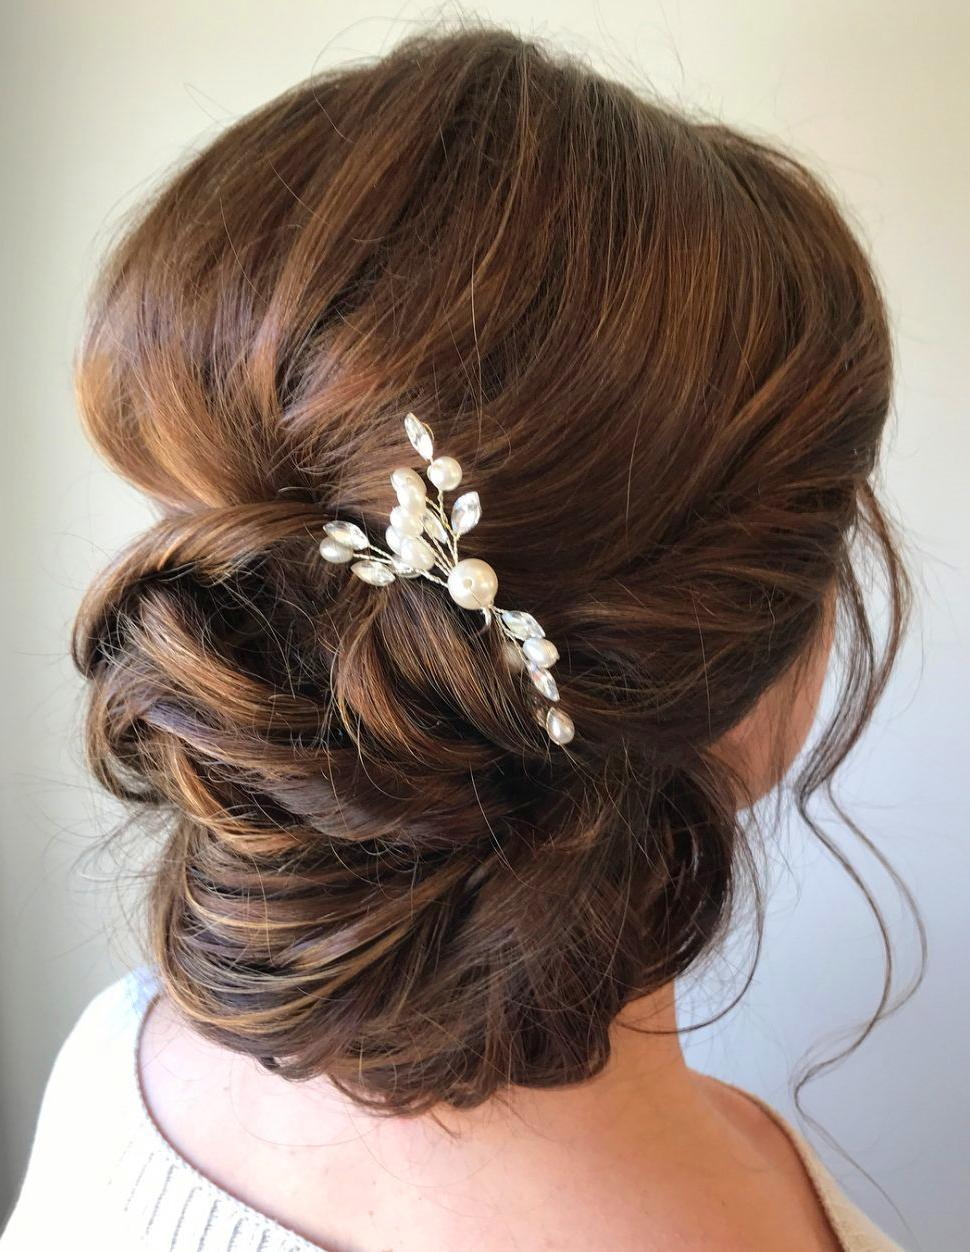 35 Simple Updo Hairstyles Ideas From Every Angle